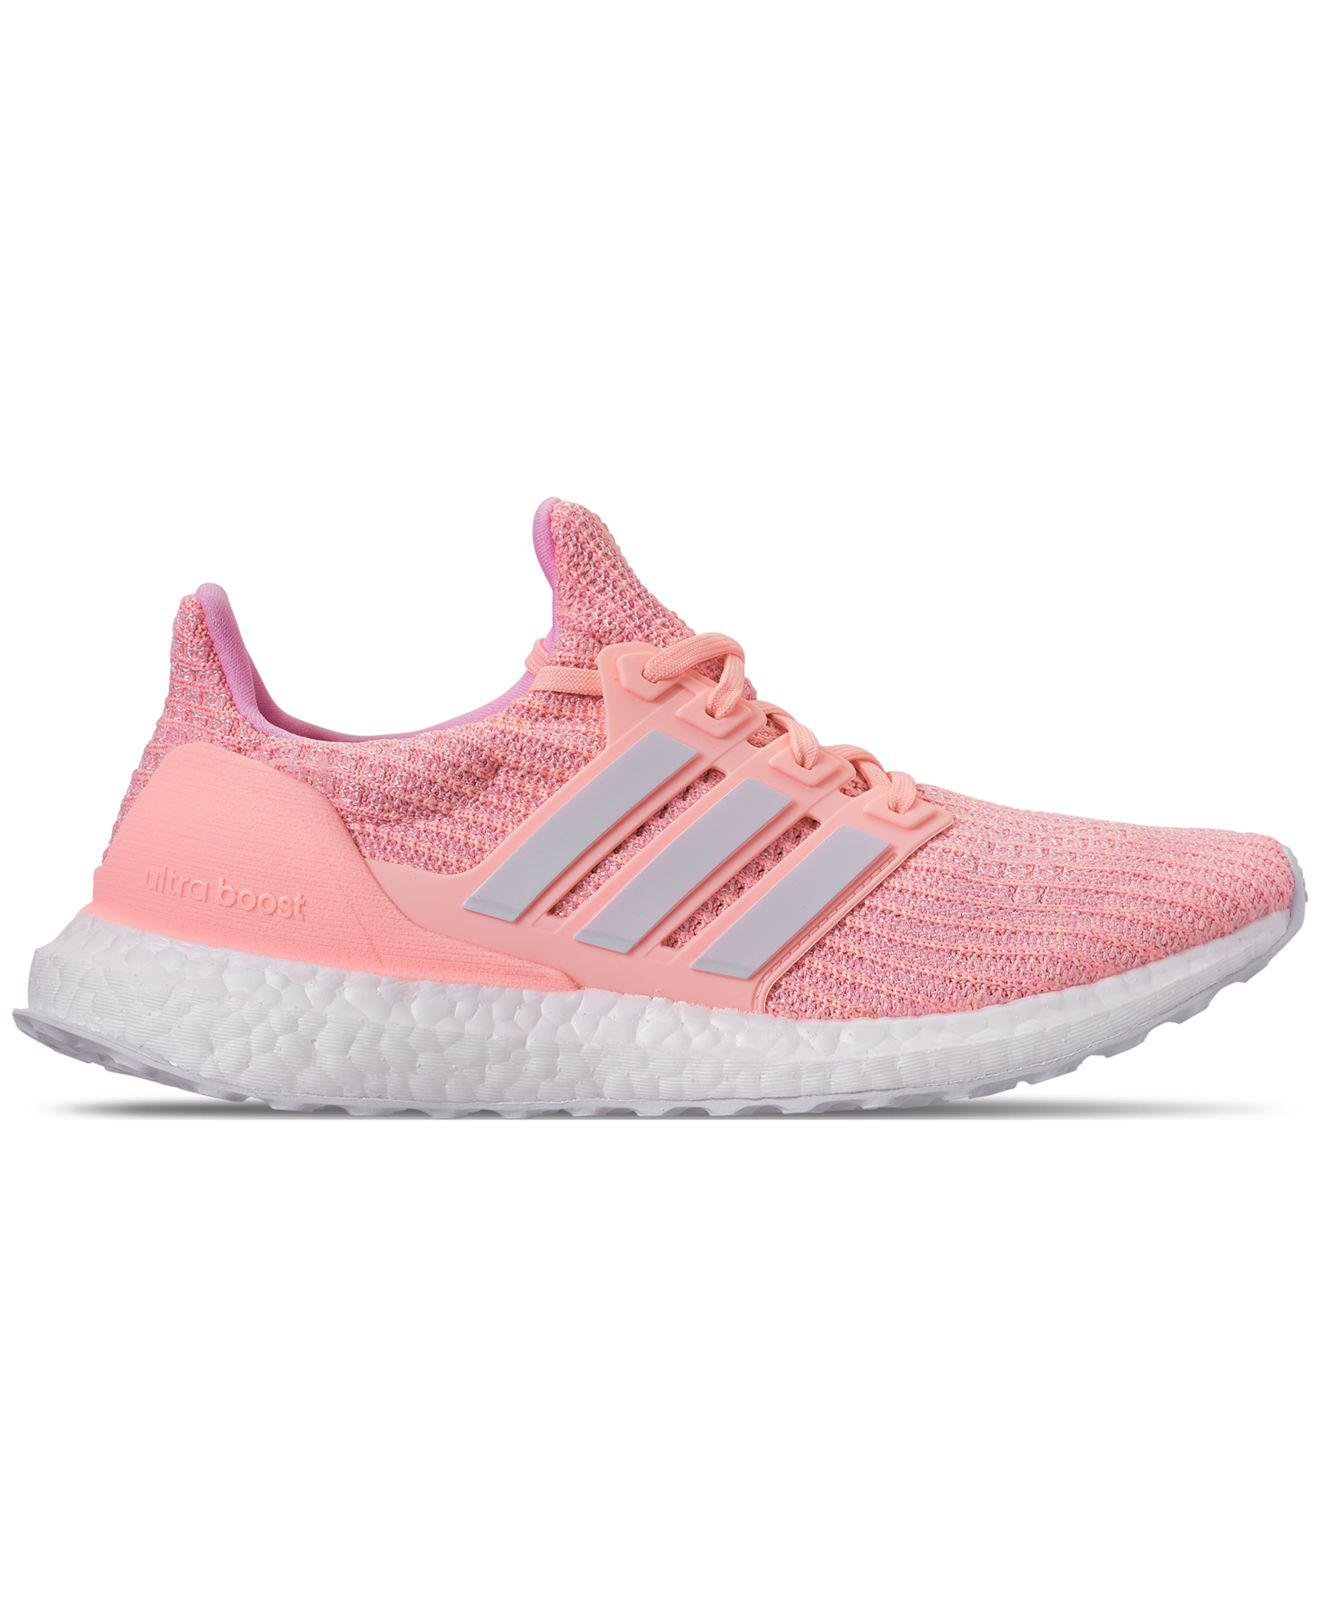 1bc2af252 Lyst - adidas Ultraboost Running Sneakers From Finish Line in Pink